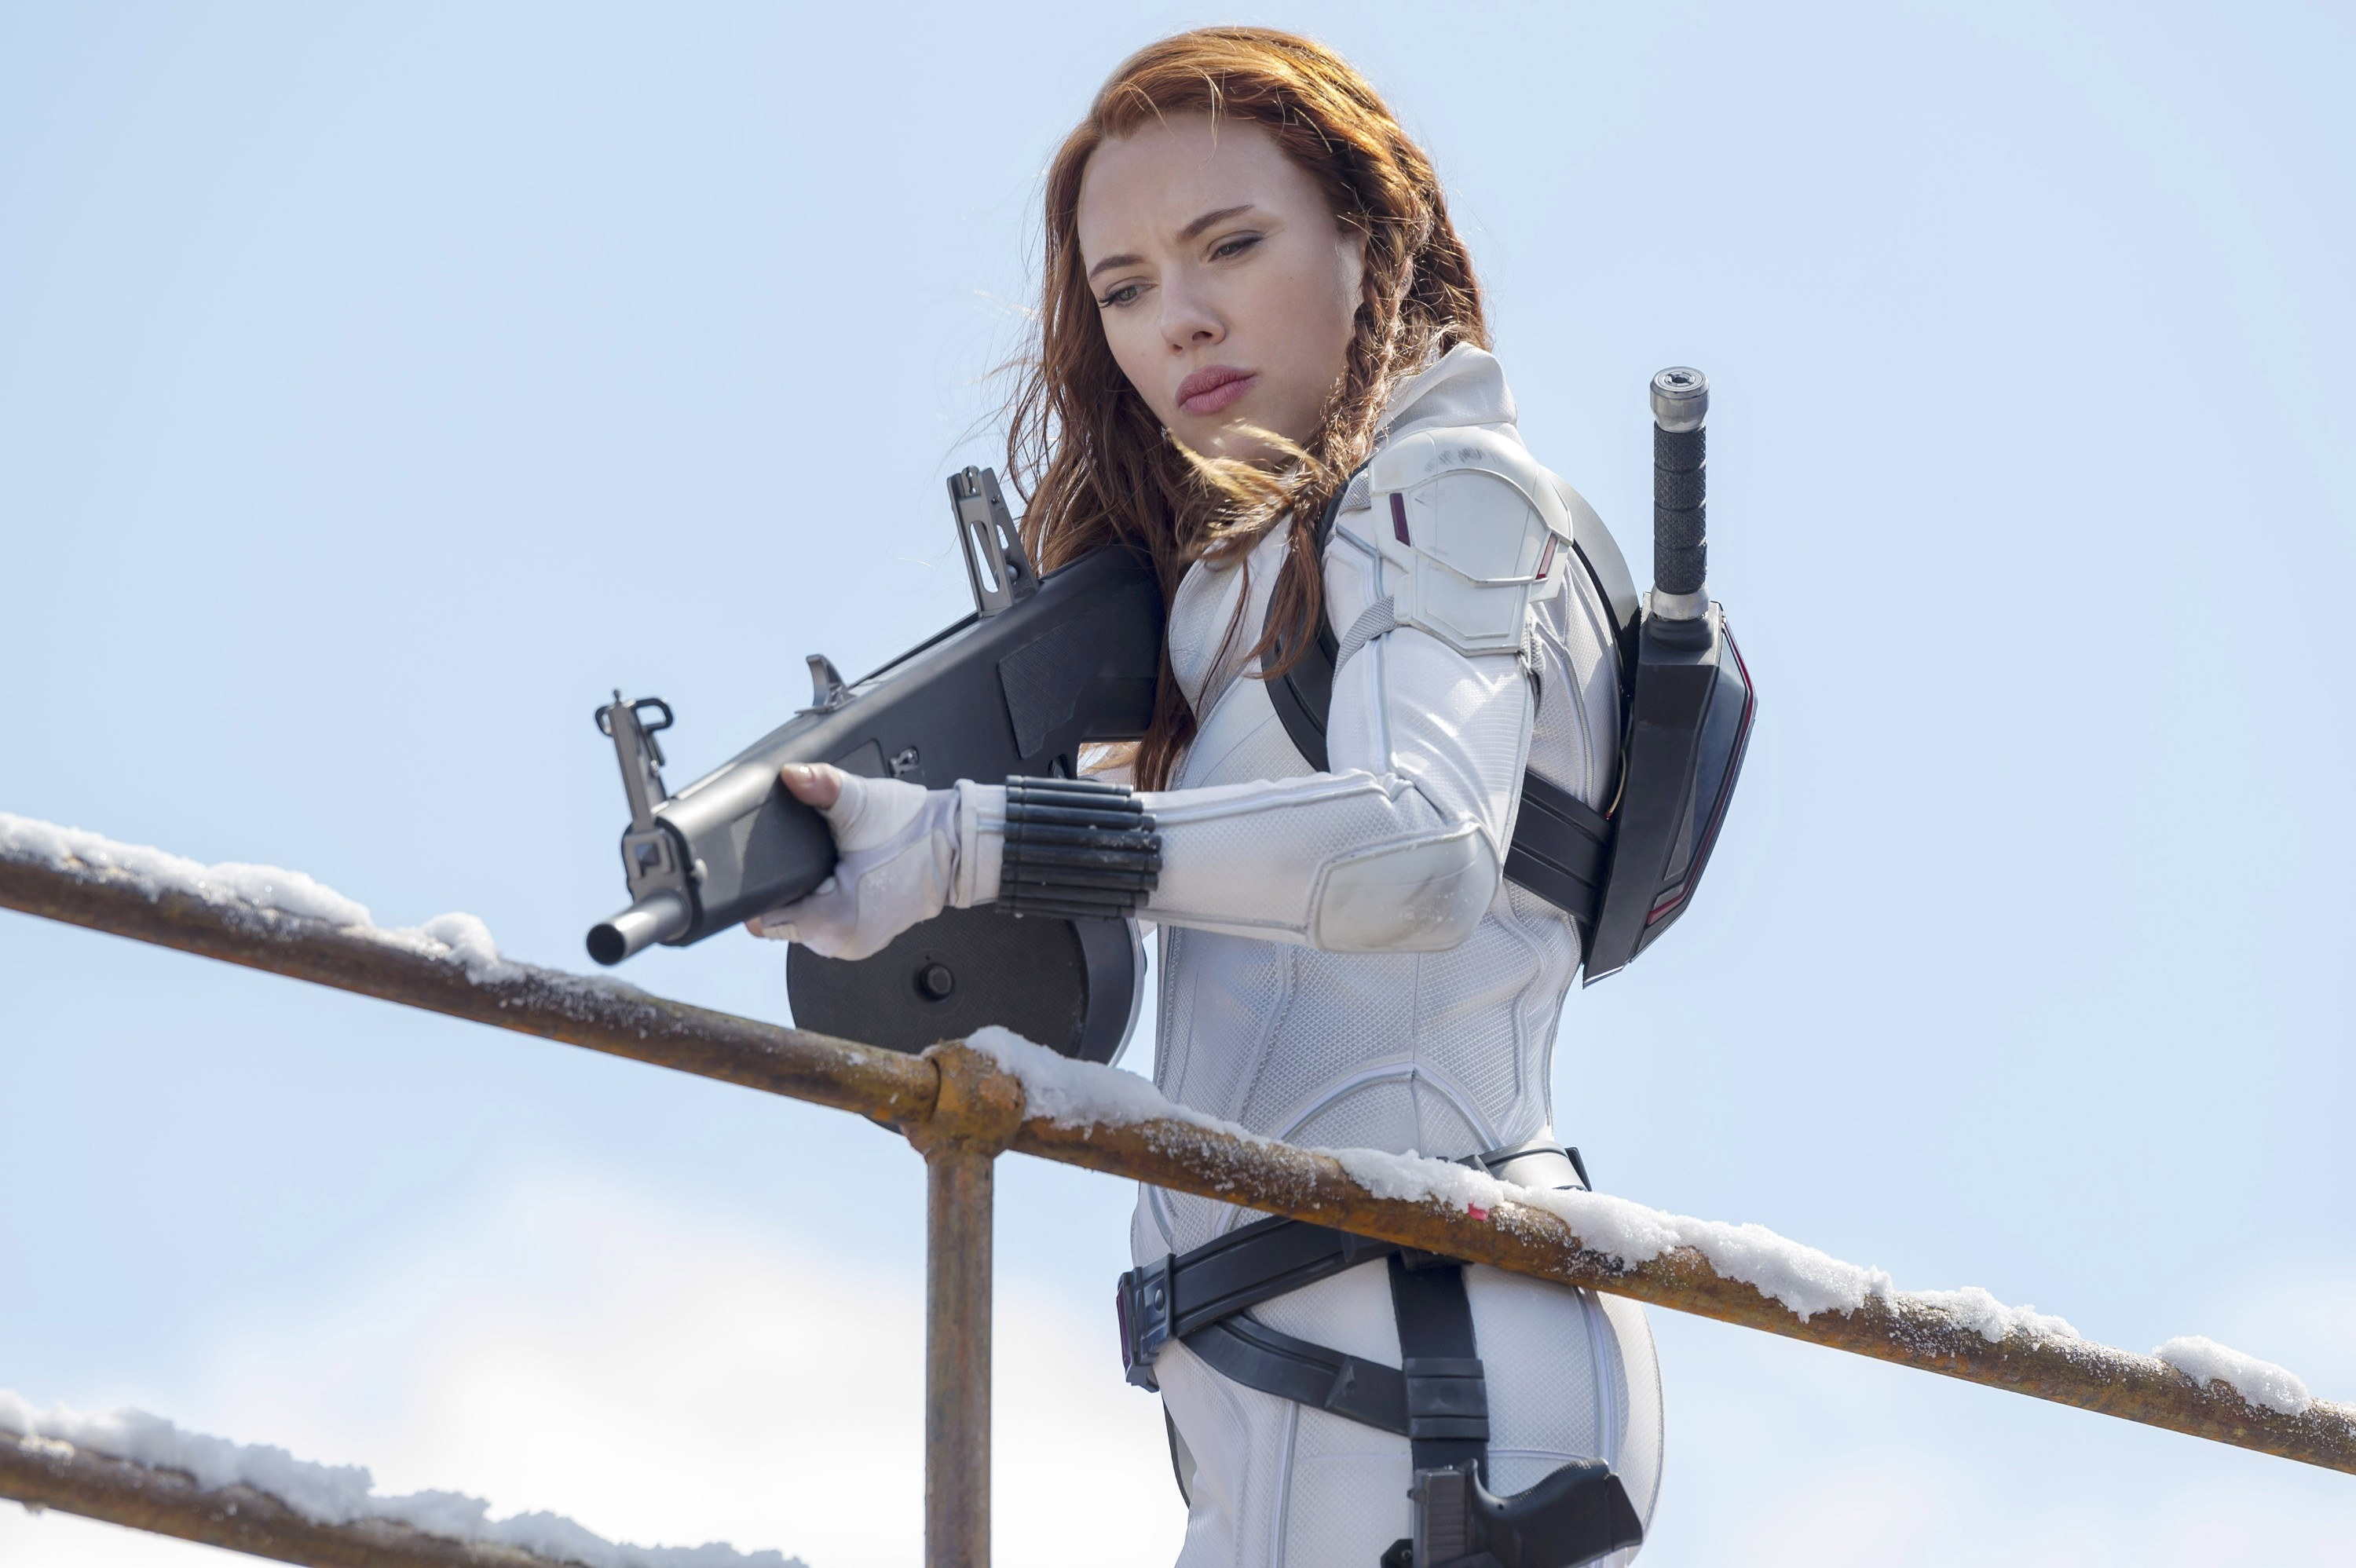 Black Widow pointing a weapon